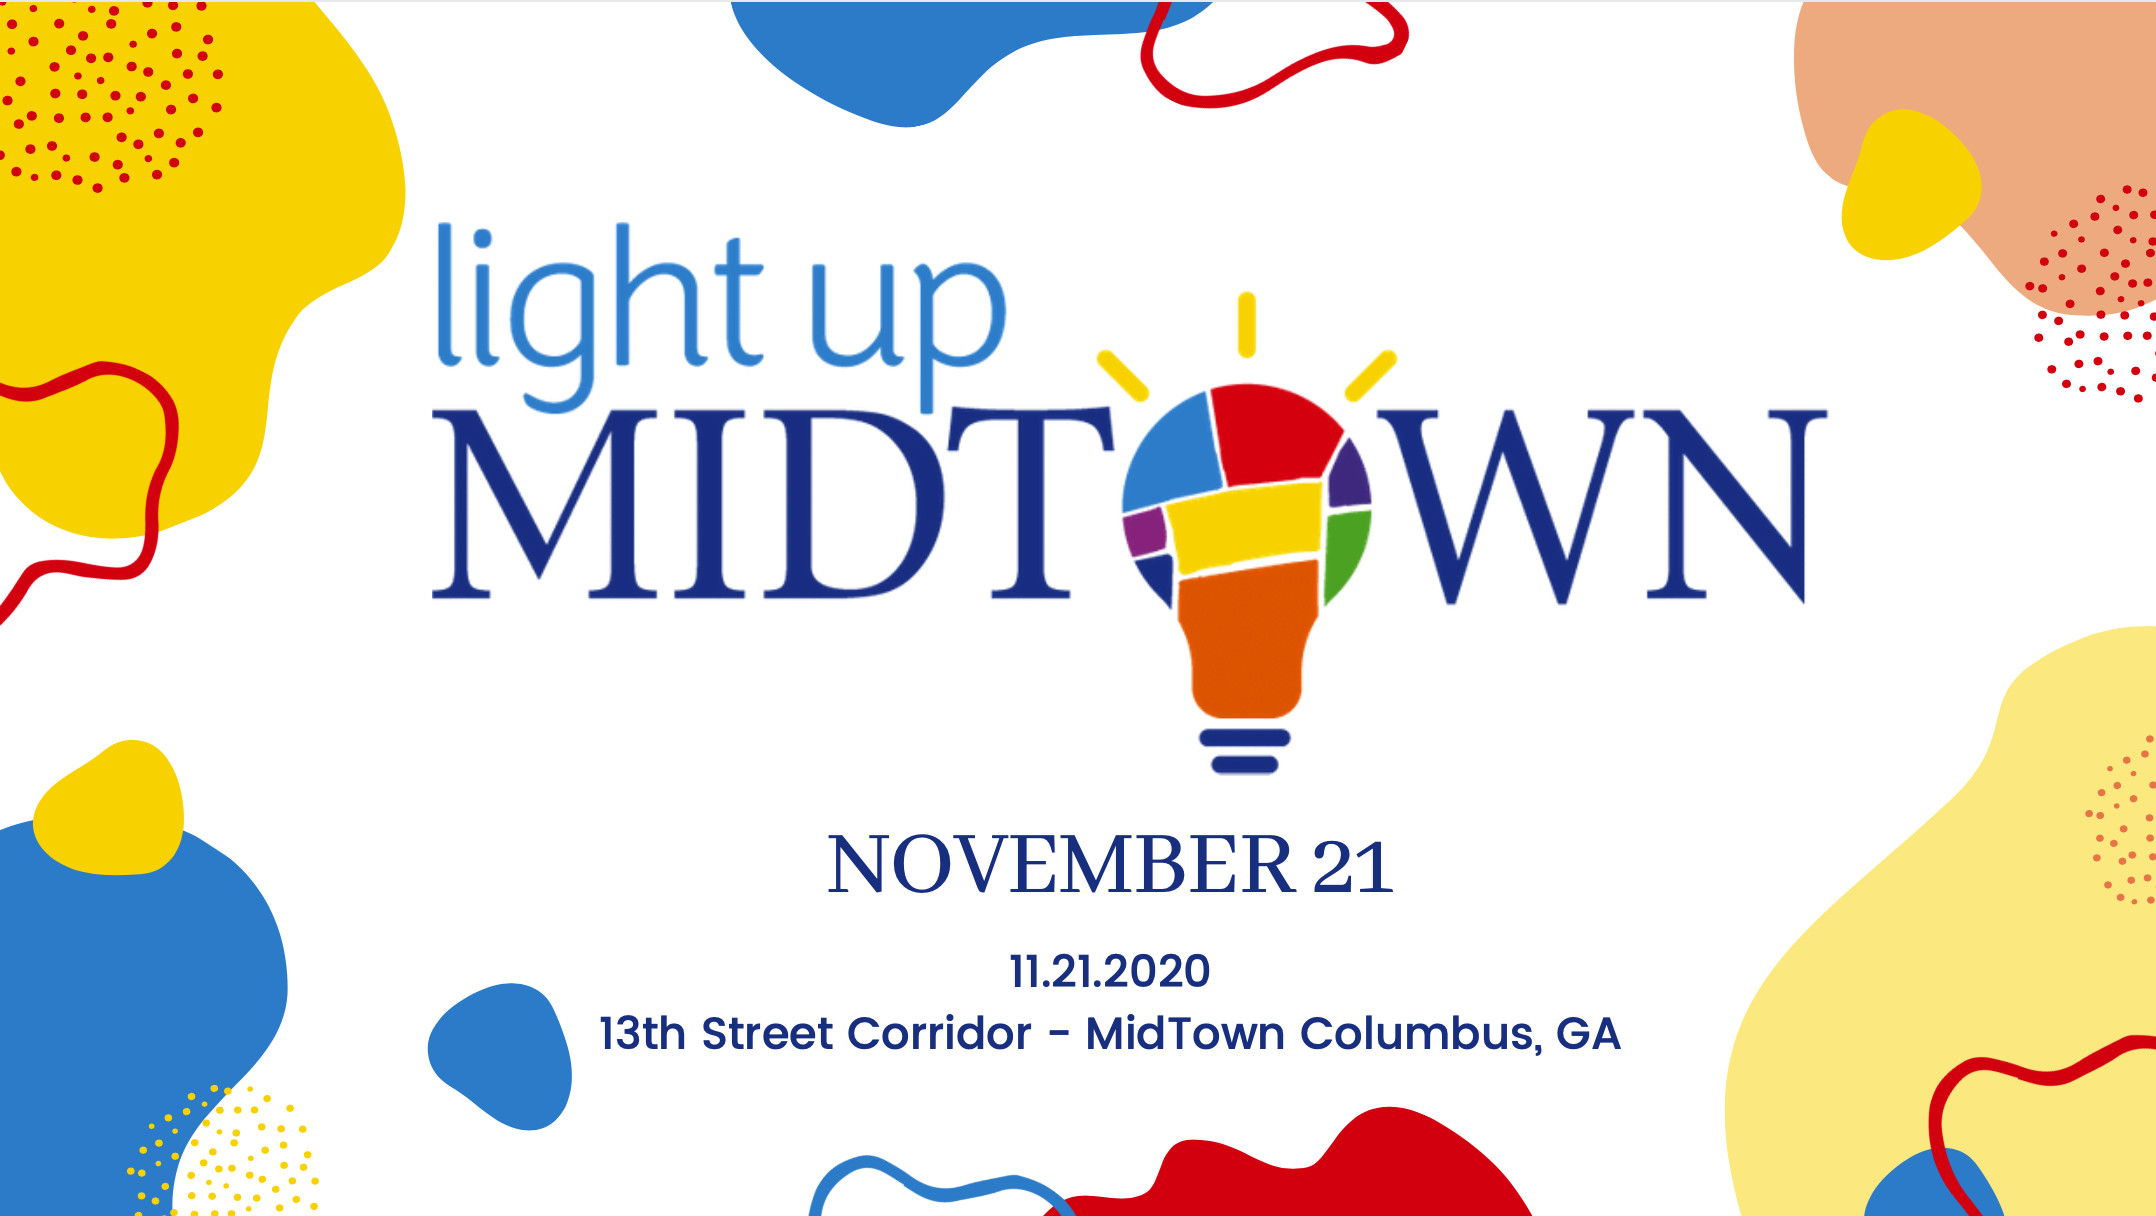 Light Up MidTown